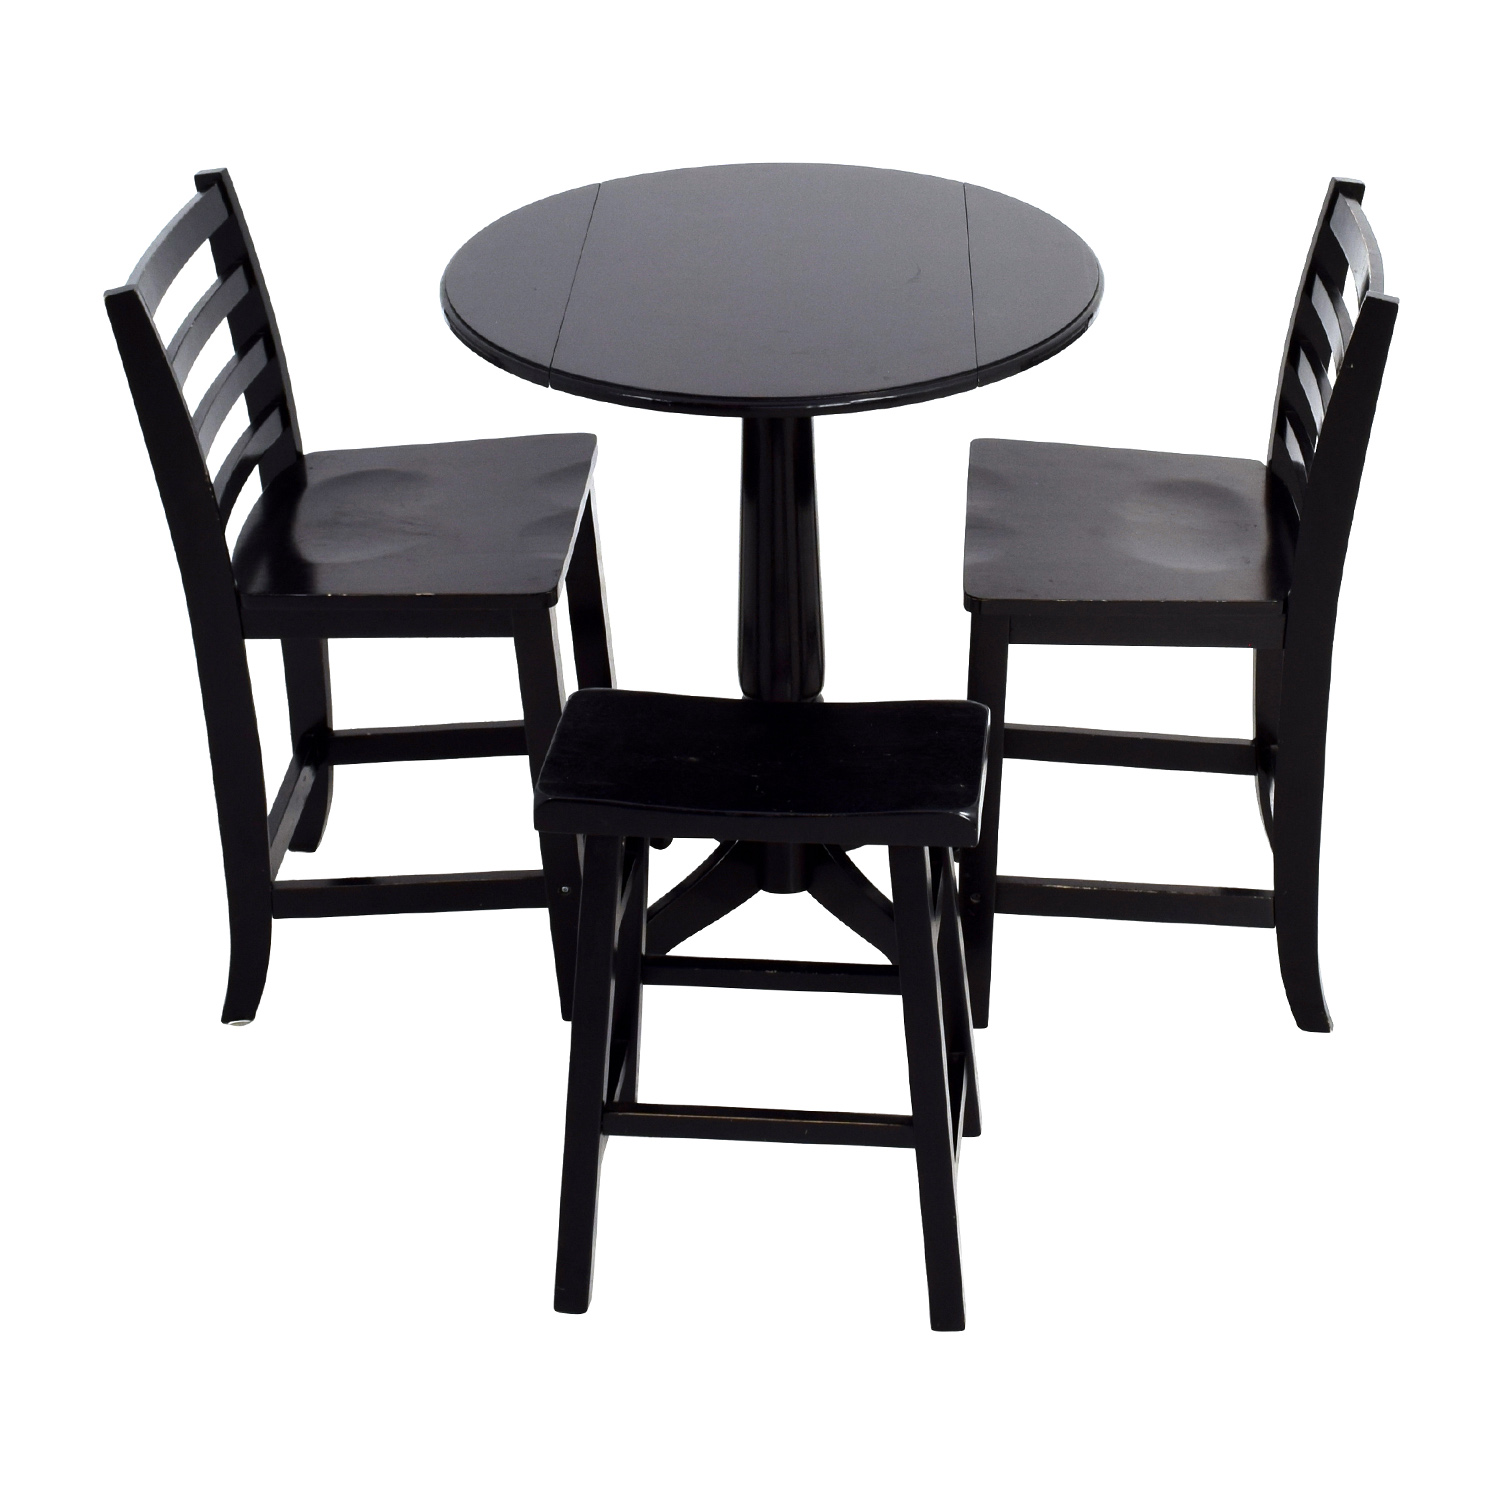 59 off counter black round table with chairs and stool tables. Black Bedroom Furniture Sets. Home Design Ideas